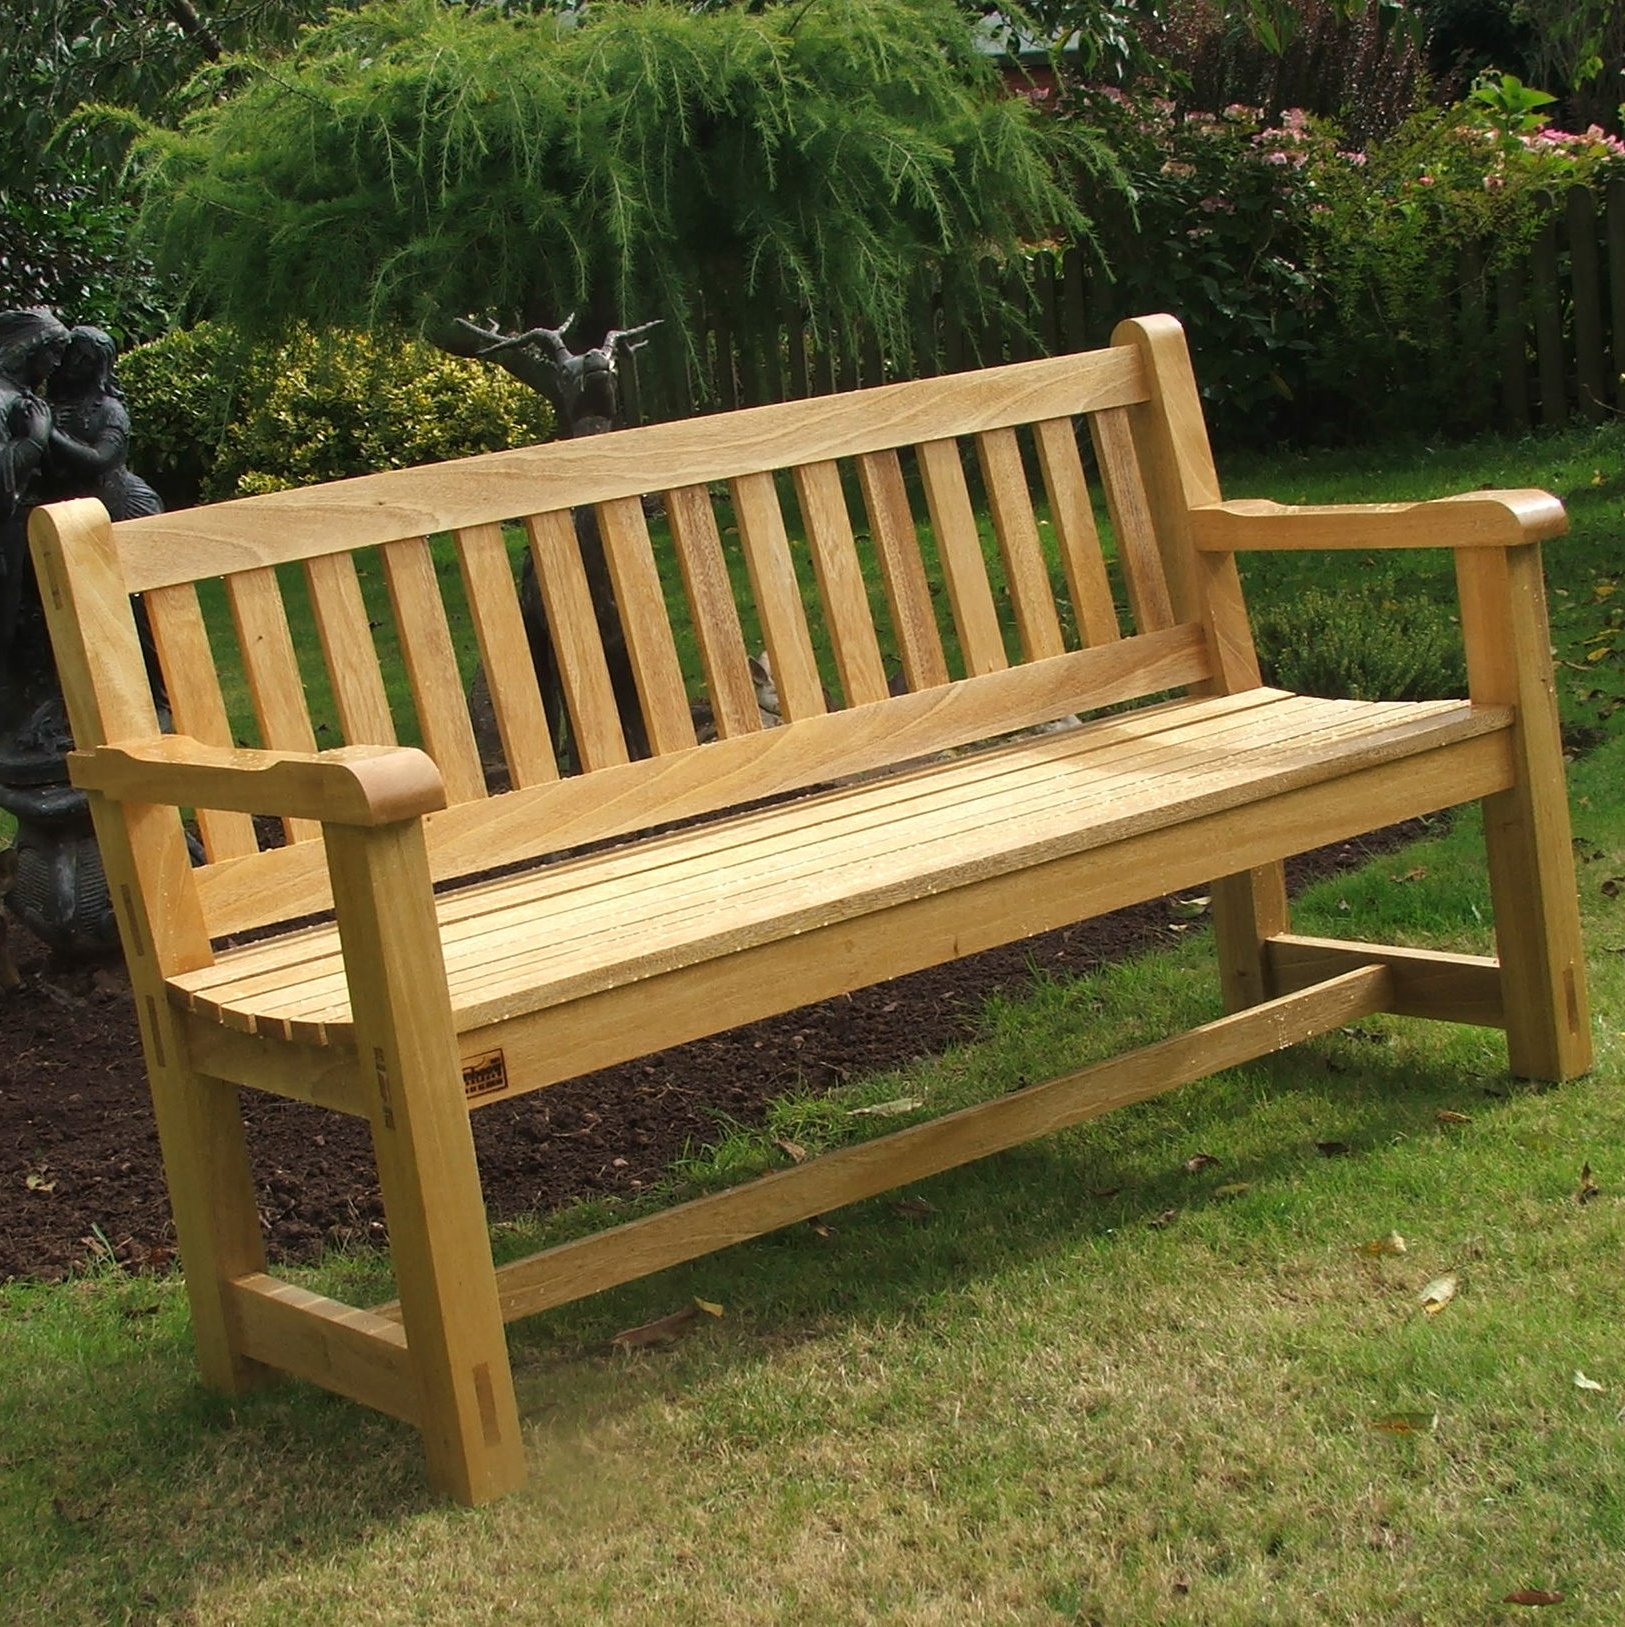 Garden Benches Seats Ideas For Current Wood Garden Benches (View 9 of 30)